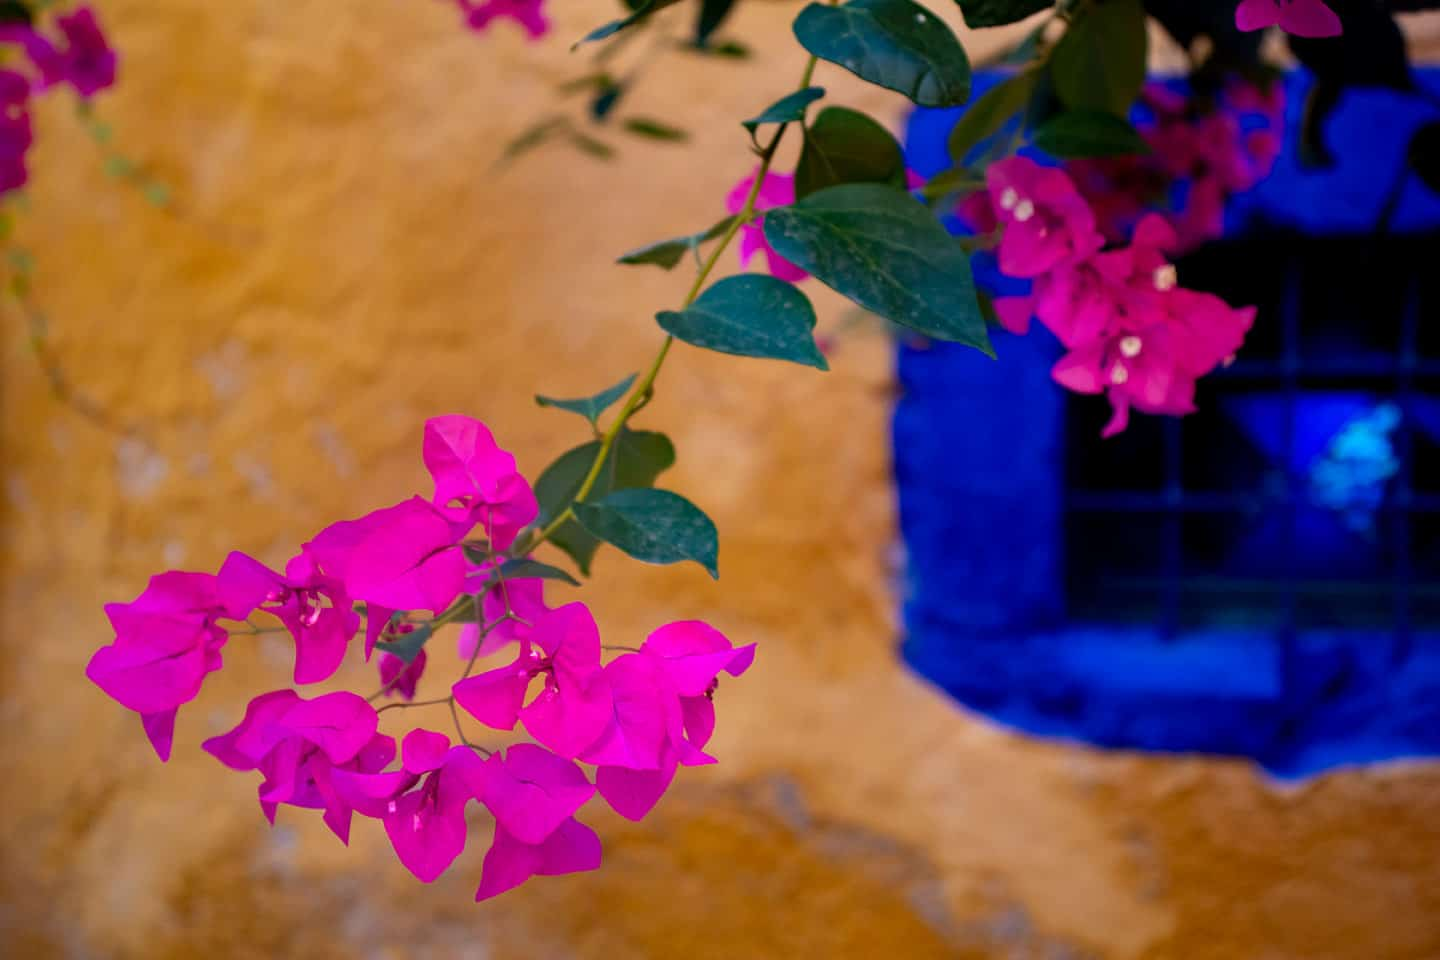 Image of bougainvillea flowers against a yellow wall background in Chania